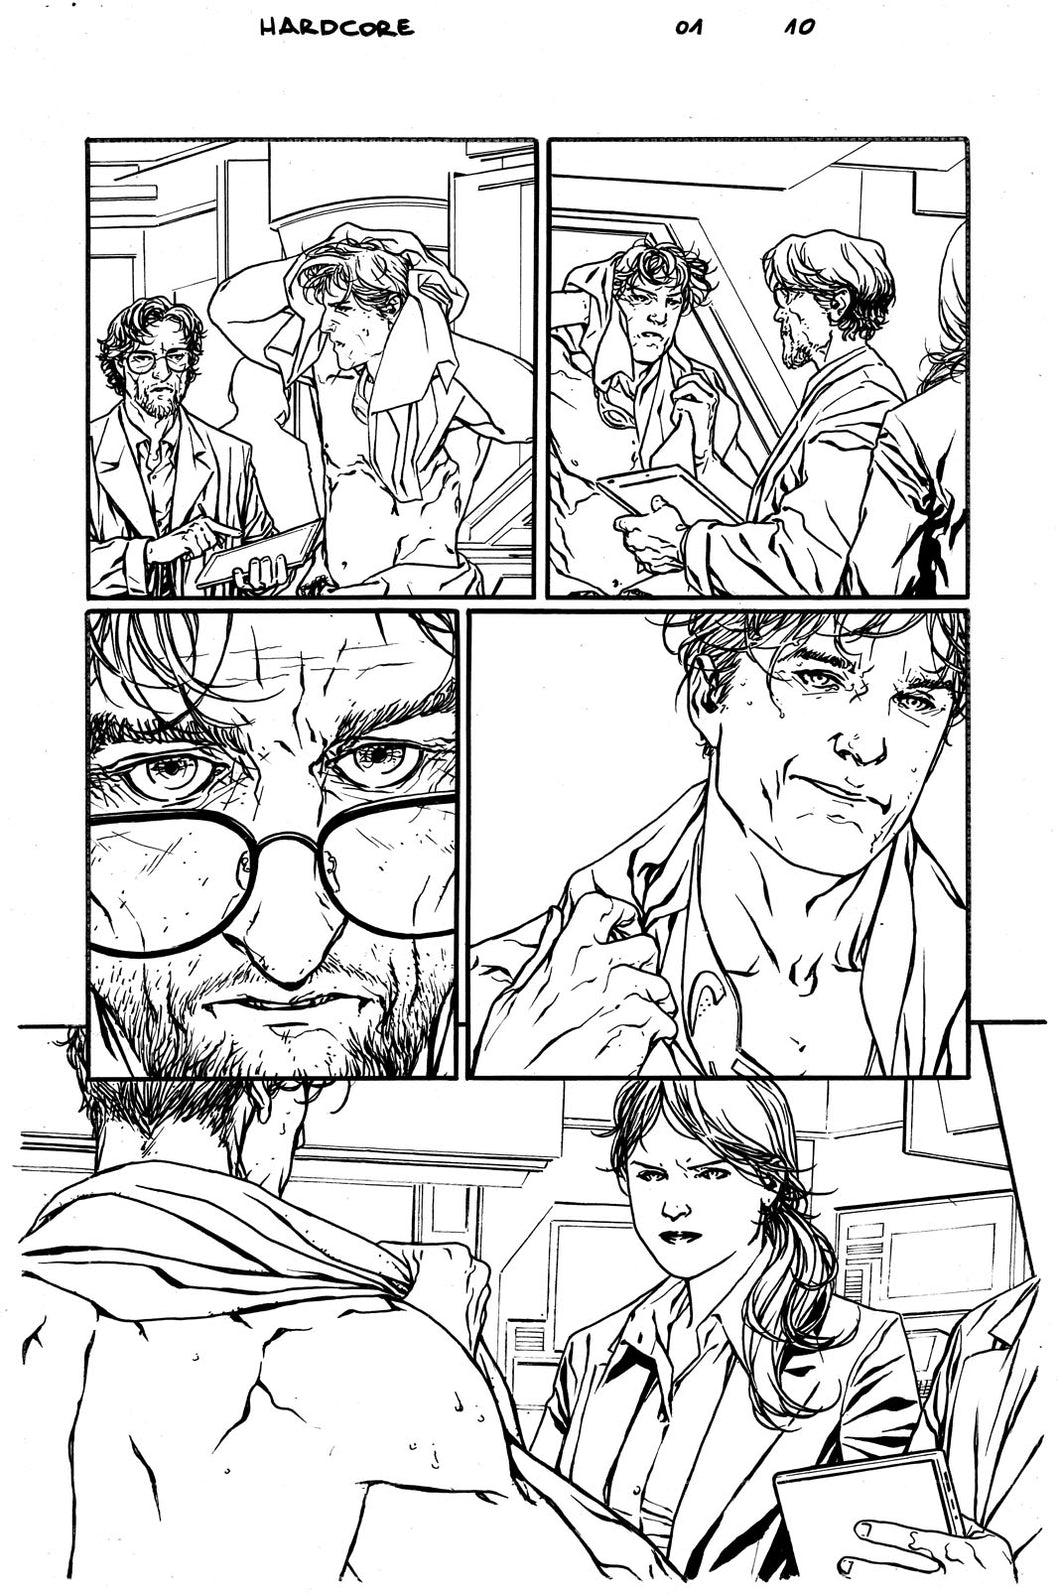 Hardcore #1 Original art - Page 10 by Alessandro Vitti